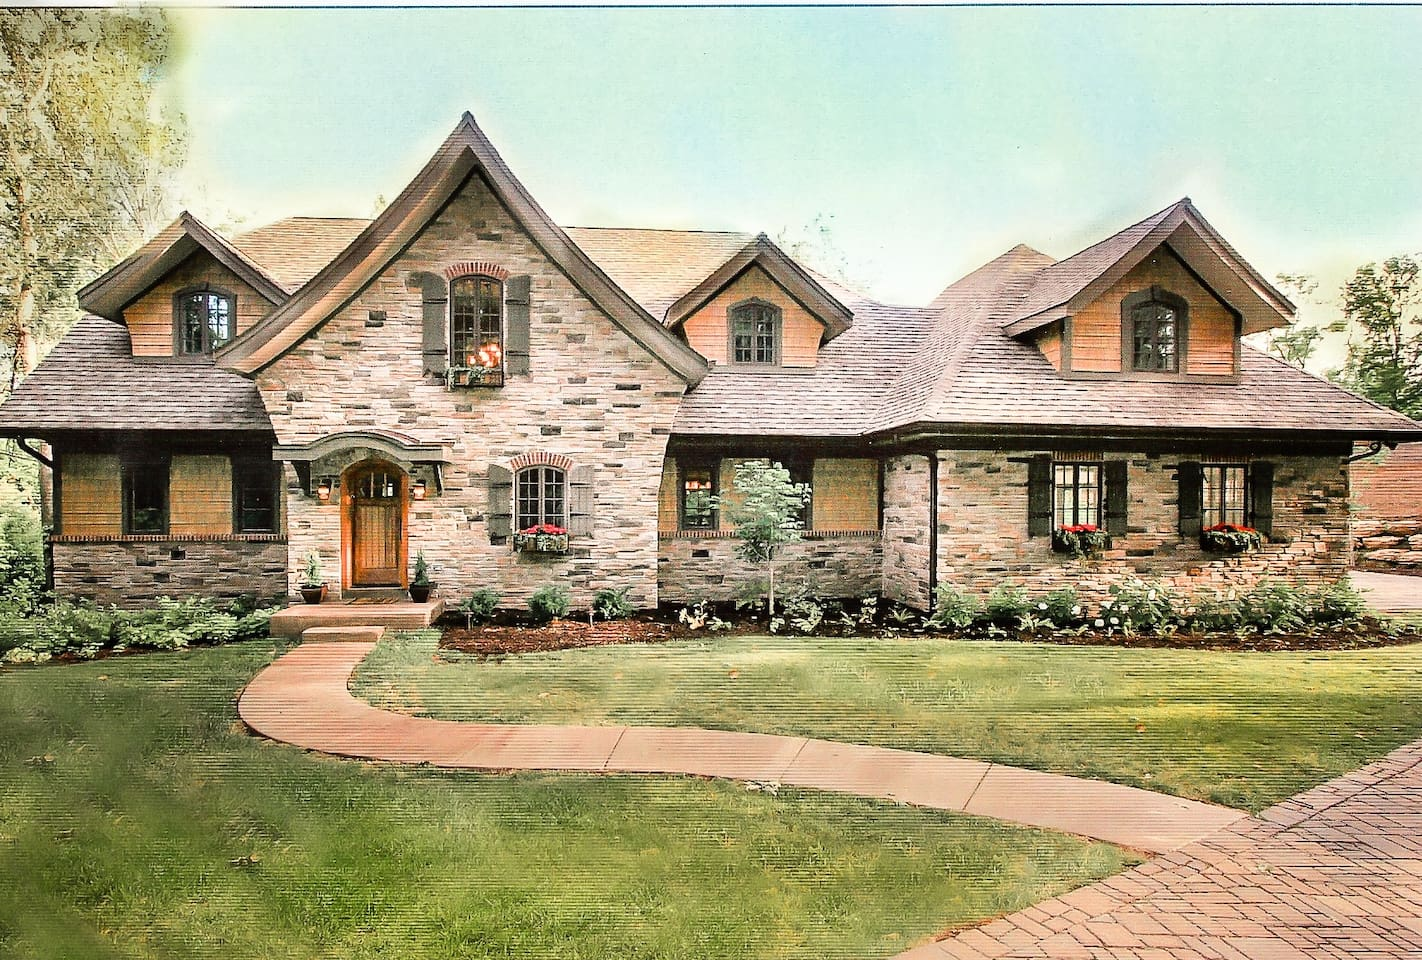 Gorgeous 5,000 sq ft home IDEAL for the PGA 2018 hosted by Bellerive Country Club. 5 bdr 4.5 bathrooms available for a luxurious stay in Creve Coeur, Missouri. Enjoy the stunning open floor plan as well as expansive stone patio including an outdoor conversation area complete with waterfall and patio. Walking distance to Bellerive Country Club, 15 minutes from Lambert Airport and located directly off of Highway 270. Don't miss this last minute, amazing opportunity to experience the PGA in luxury and comfort!